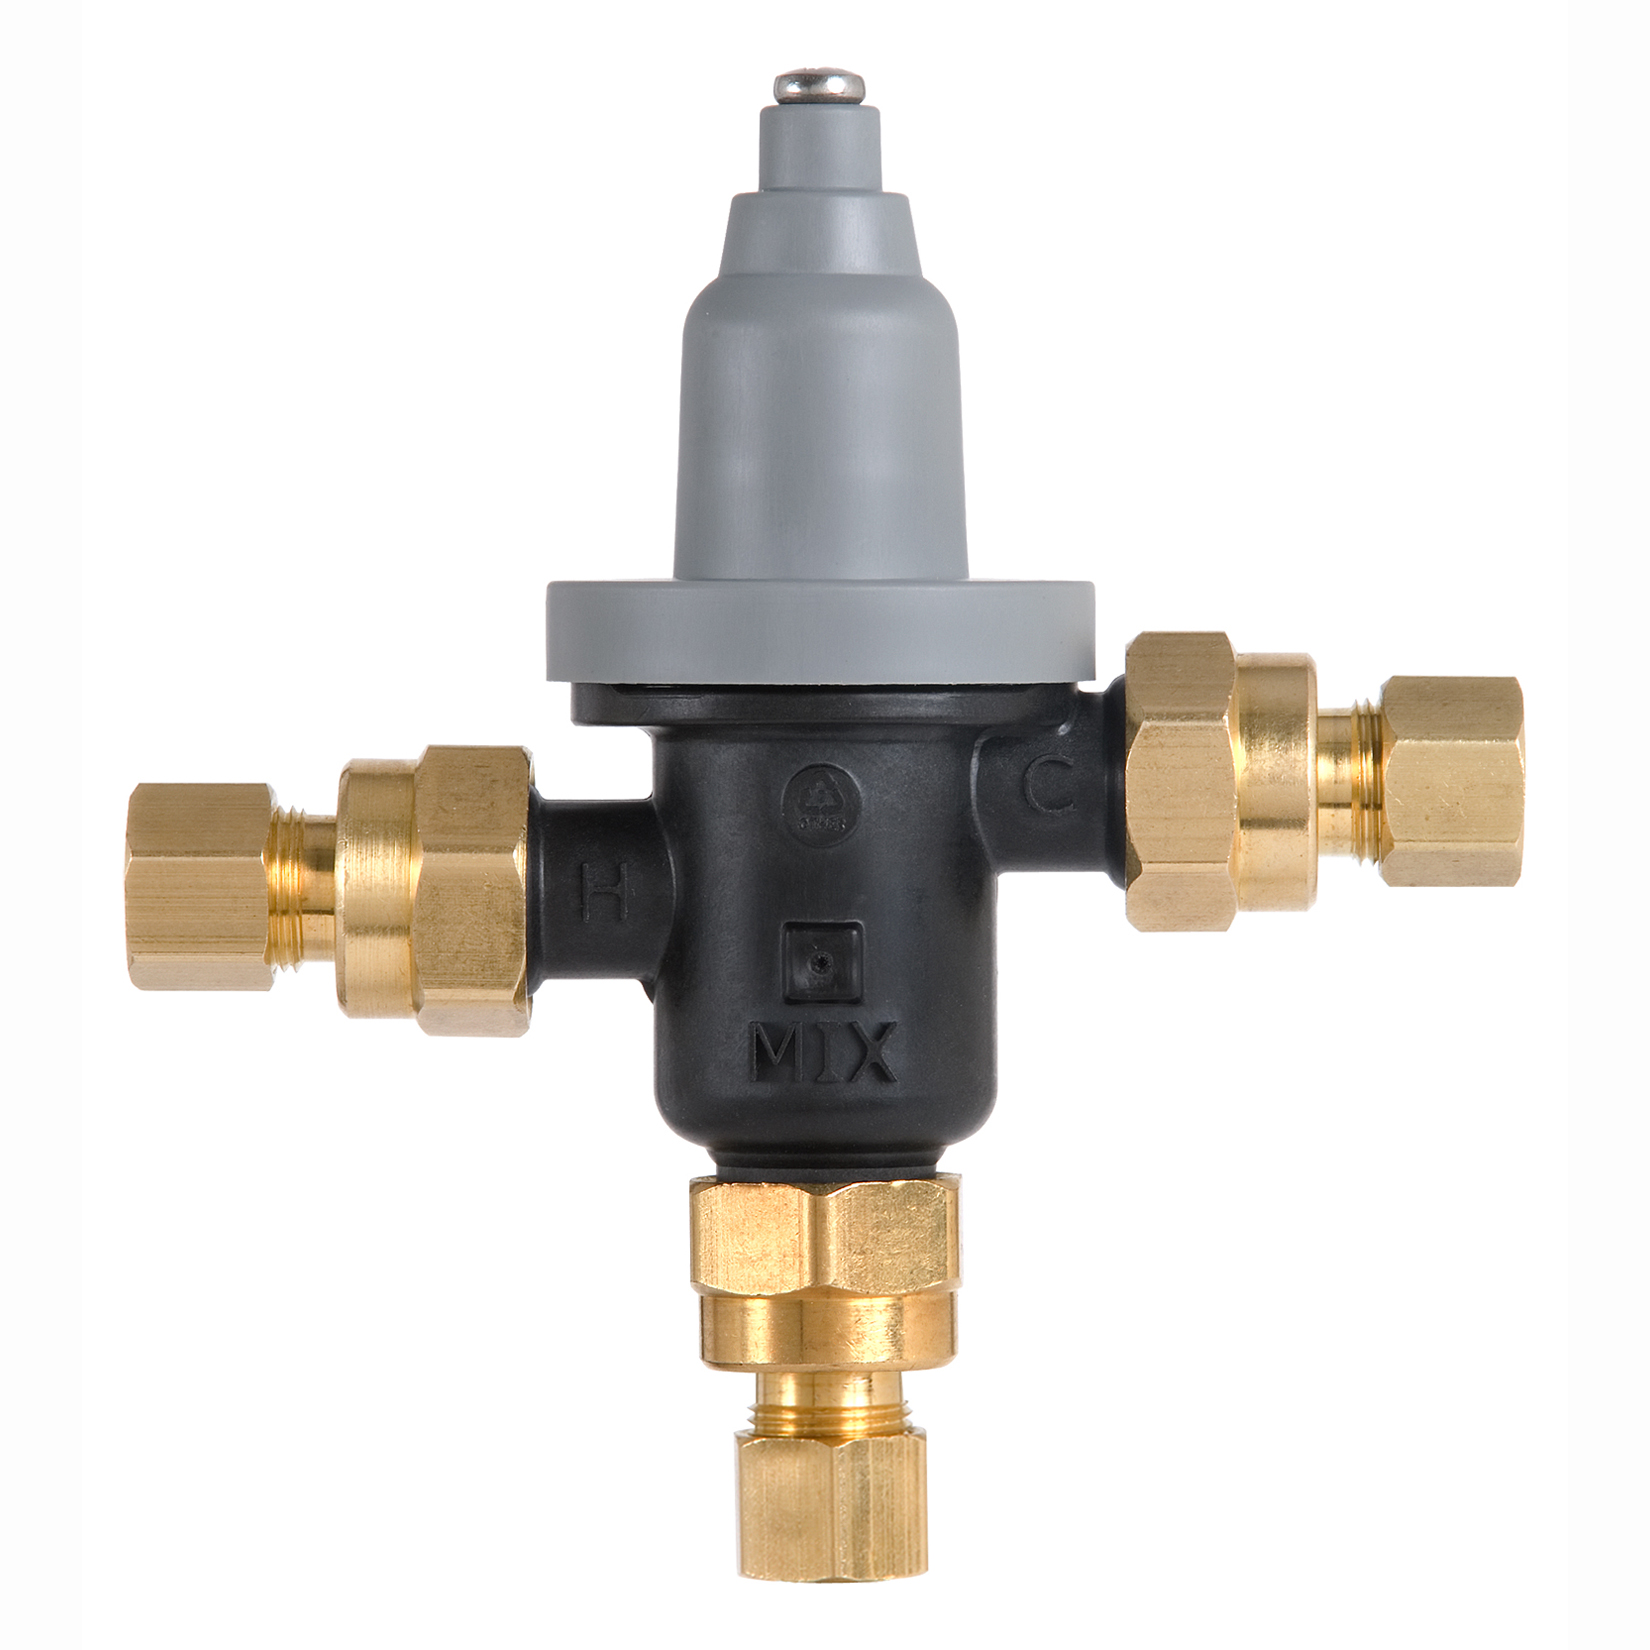 "Thermostatic Mixing Valve: Point-of-Use Valve With 3/8"" Compression Fittings"